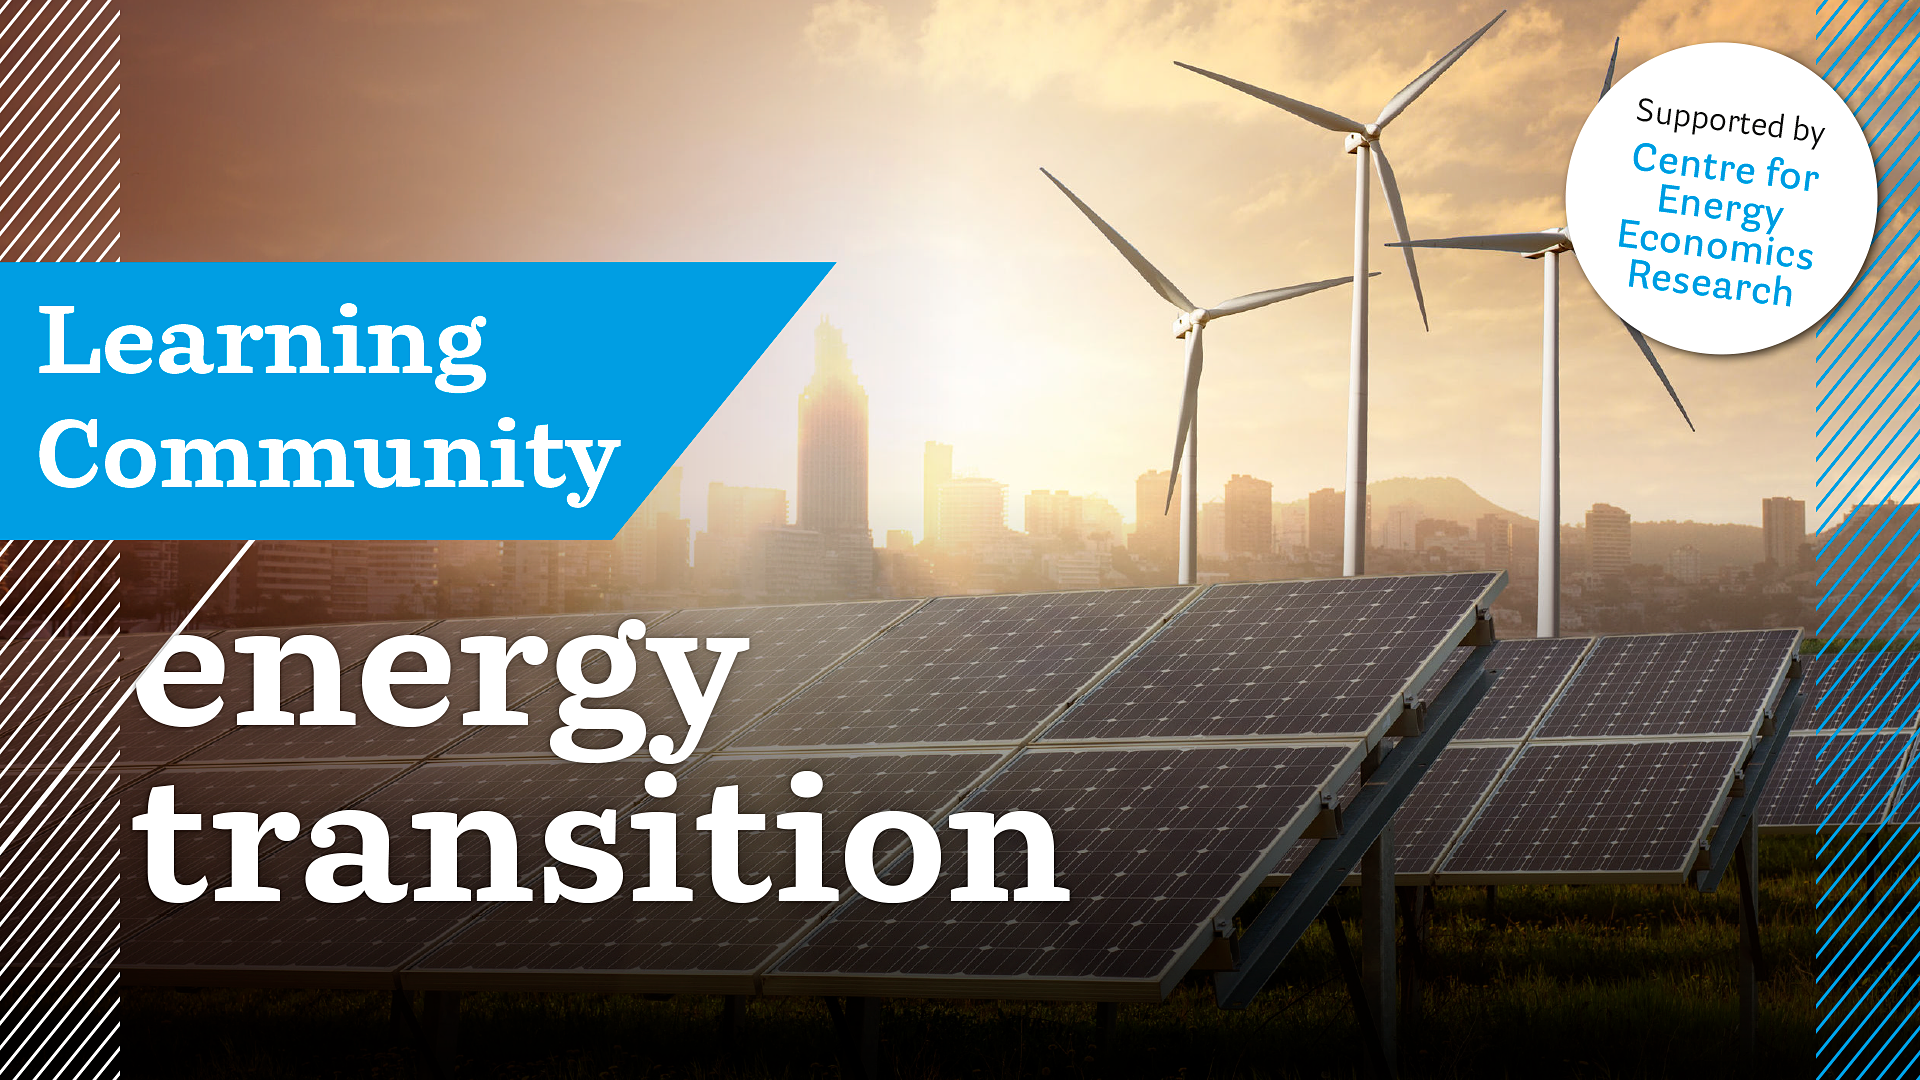 Learning Community Energy transition